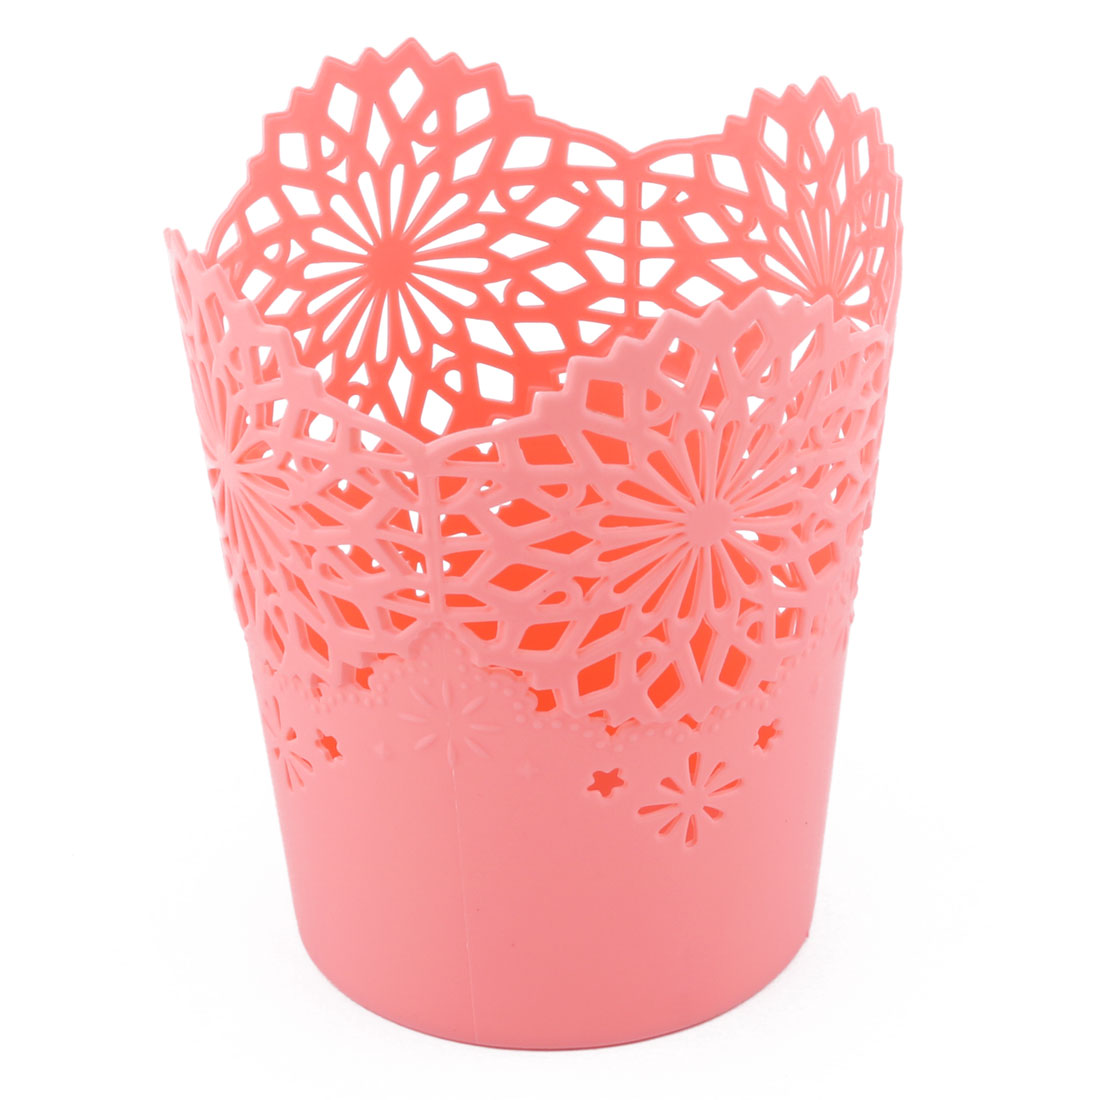 Household Office Hollow Out Desktop Sundries Ruler Organizer Storage Basket Coral Pink